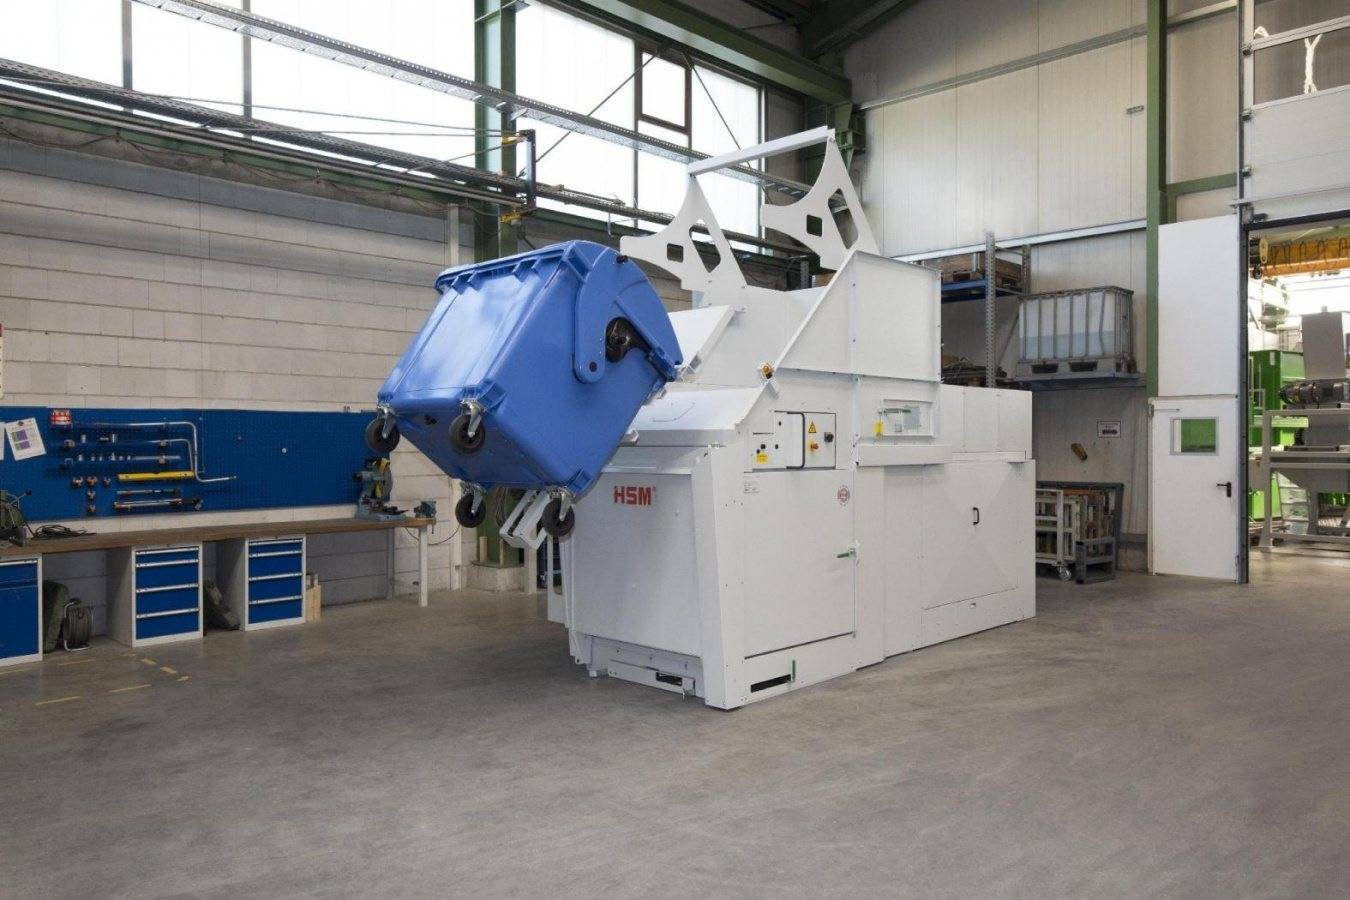 Simple Emptying of large Refuse Containers HSM HL 7009 MGB – the compact horizontal baling press for industry